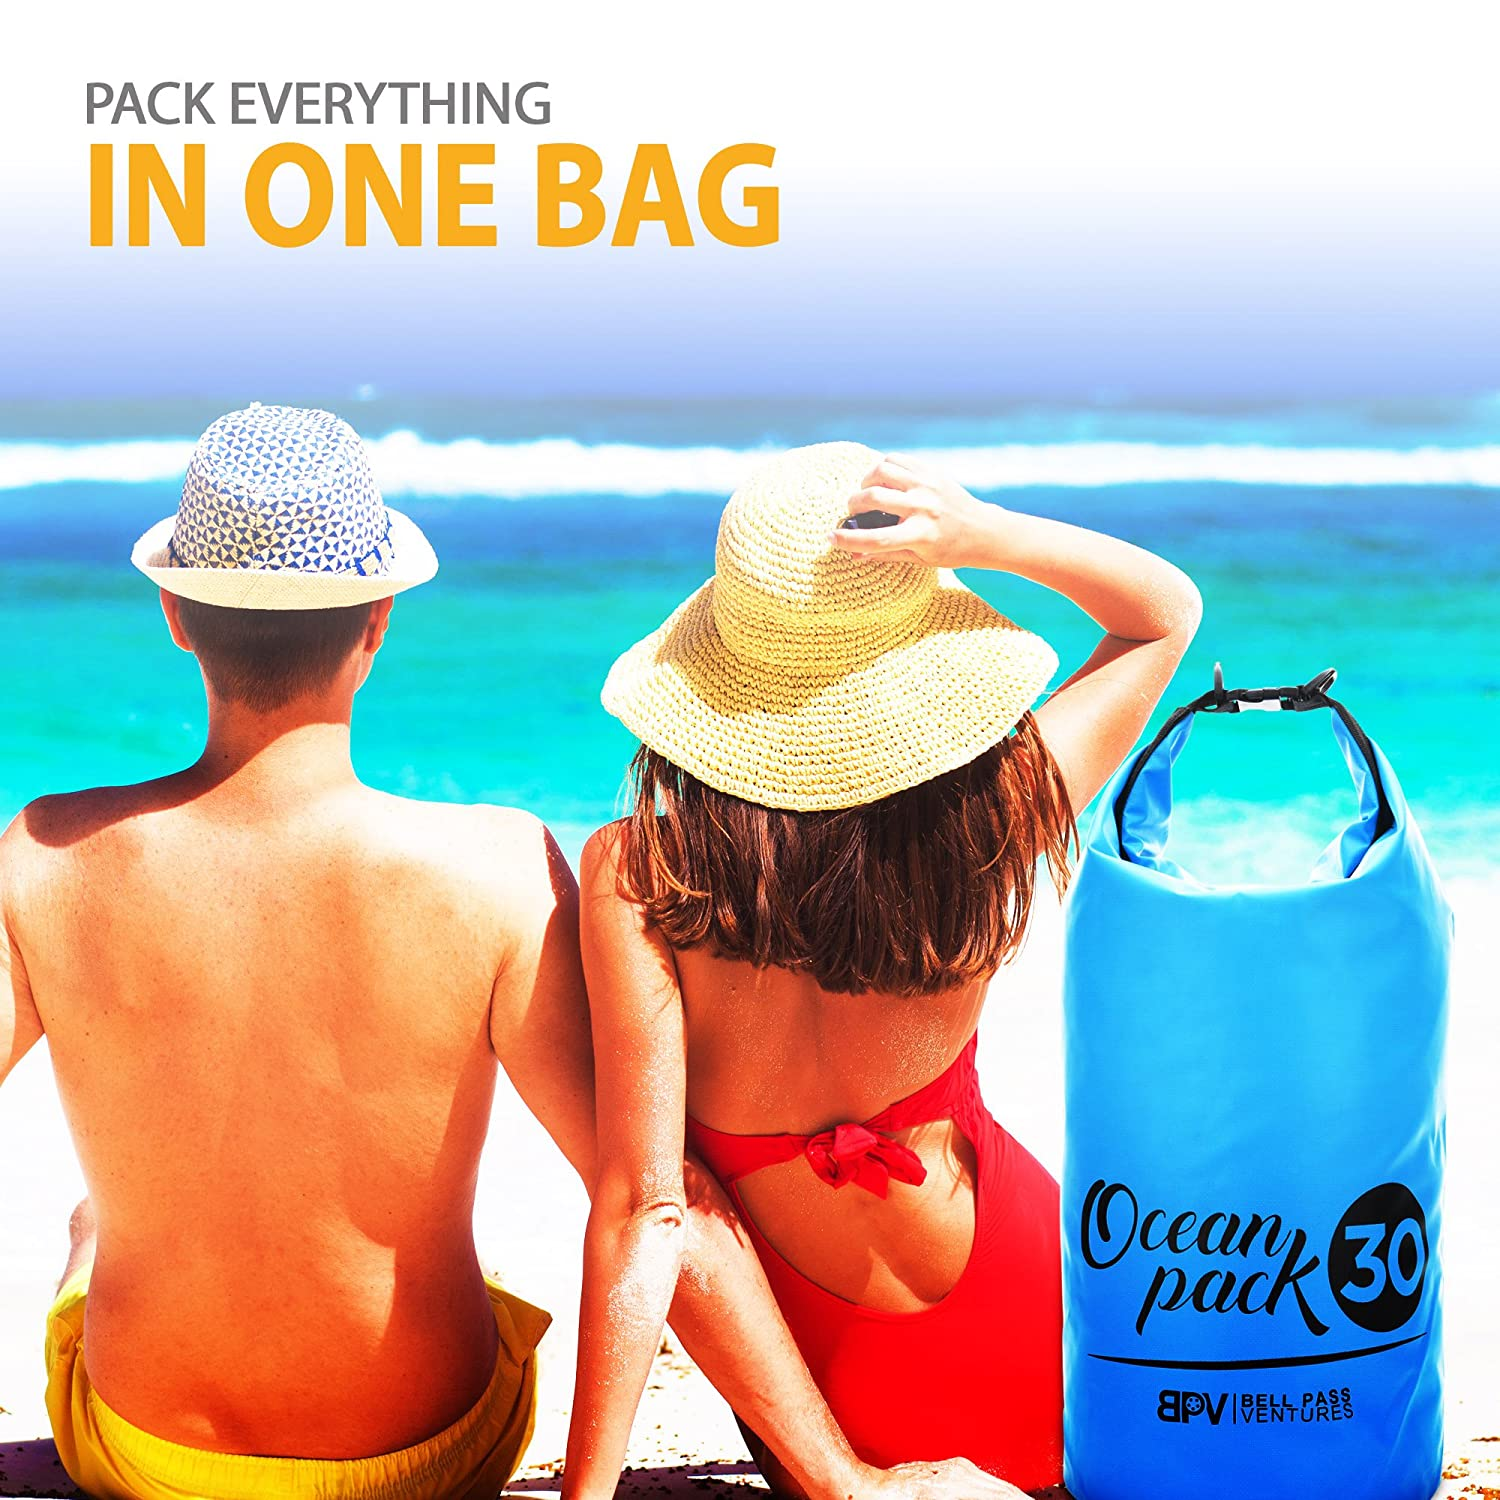 Free Waterproof Smart Phone Pouch Included at the Beach and other outdoor activities Kayaking Camping Bell Pass Ventures Waterproof Dry Bag Roll Top Dry Sack Keeps Your Gear Dry when Boating Scuba Diving Hiking